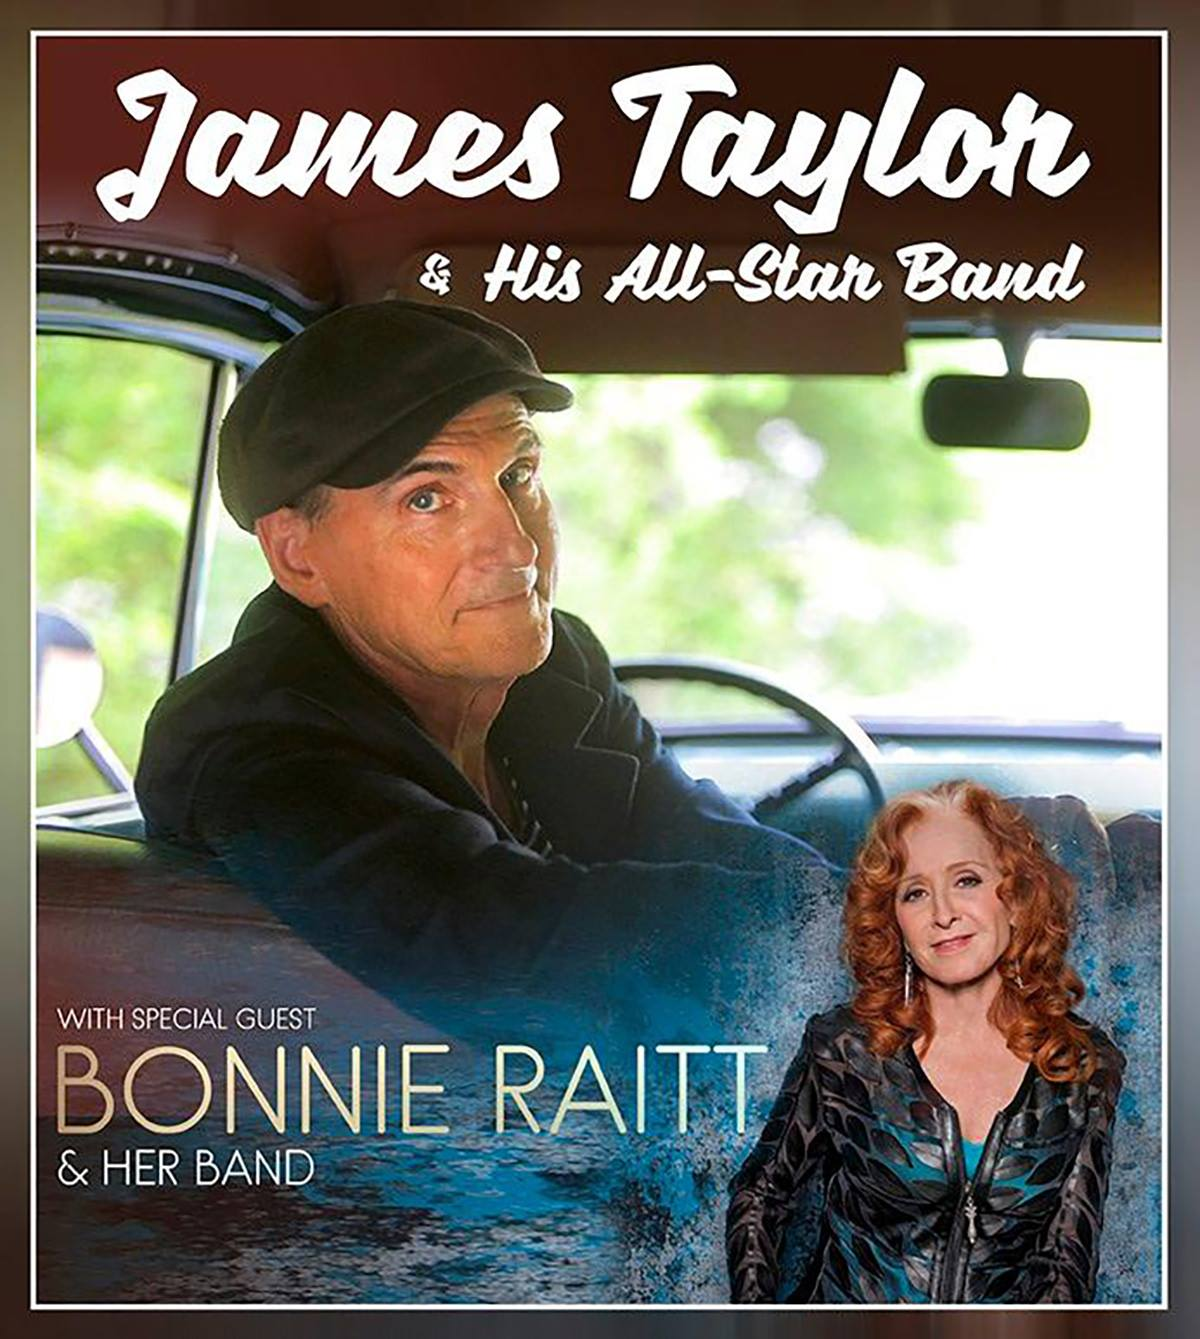 James Taylor bringing Bonnie Raitt with him to Van Andel Arena